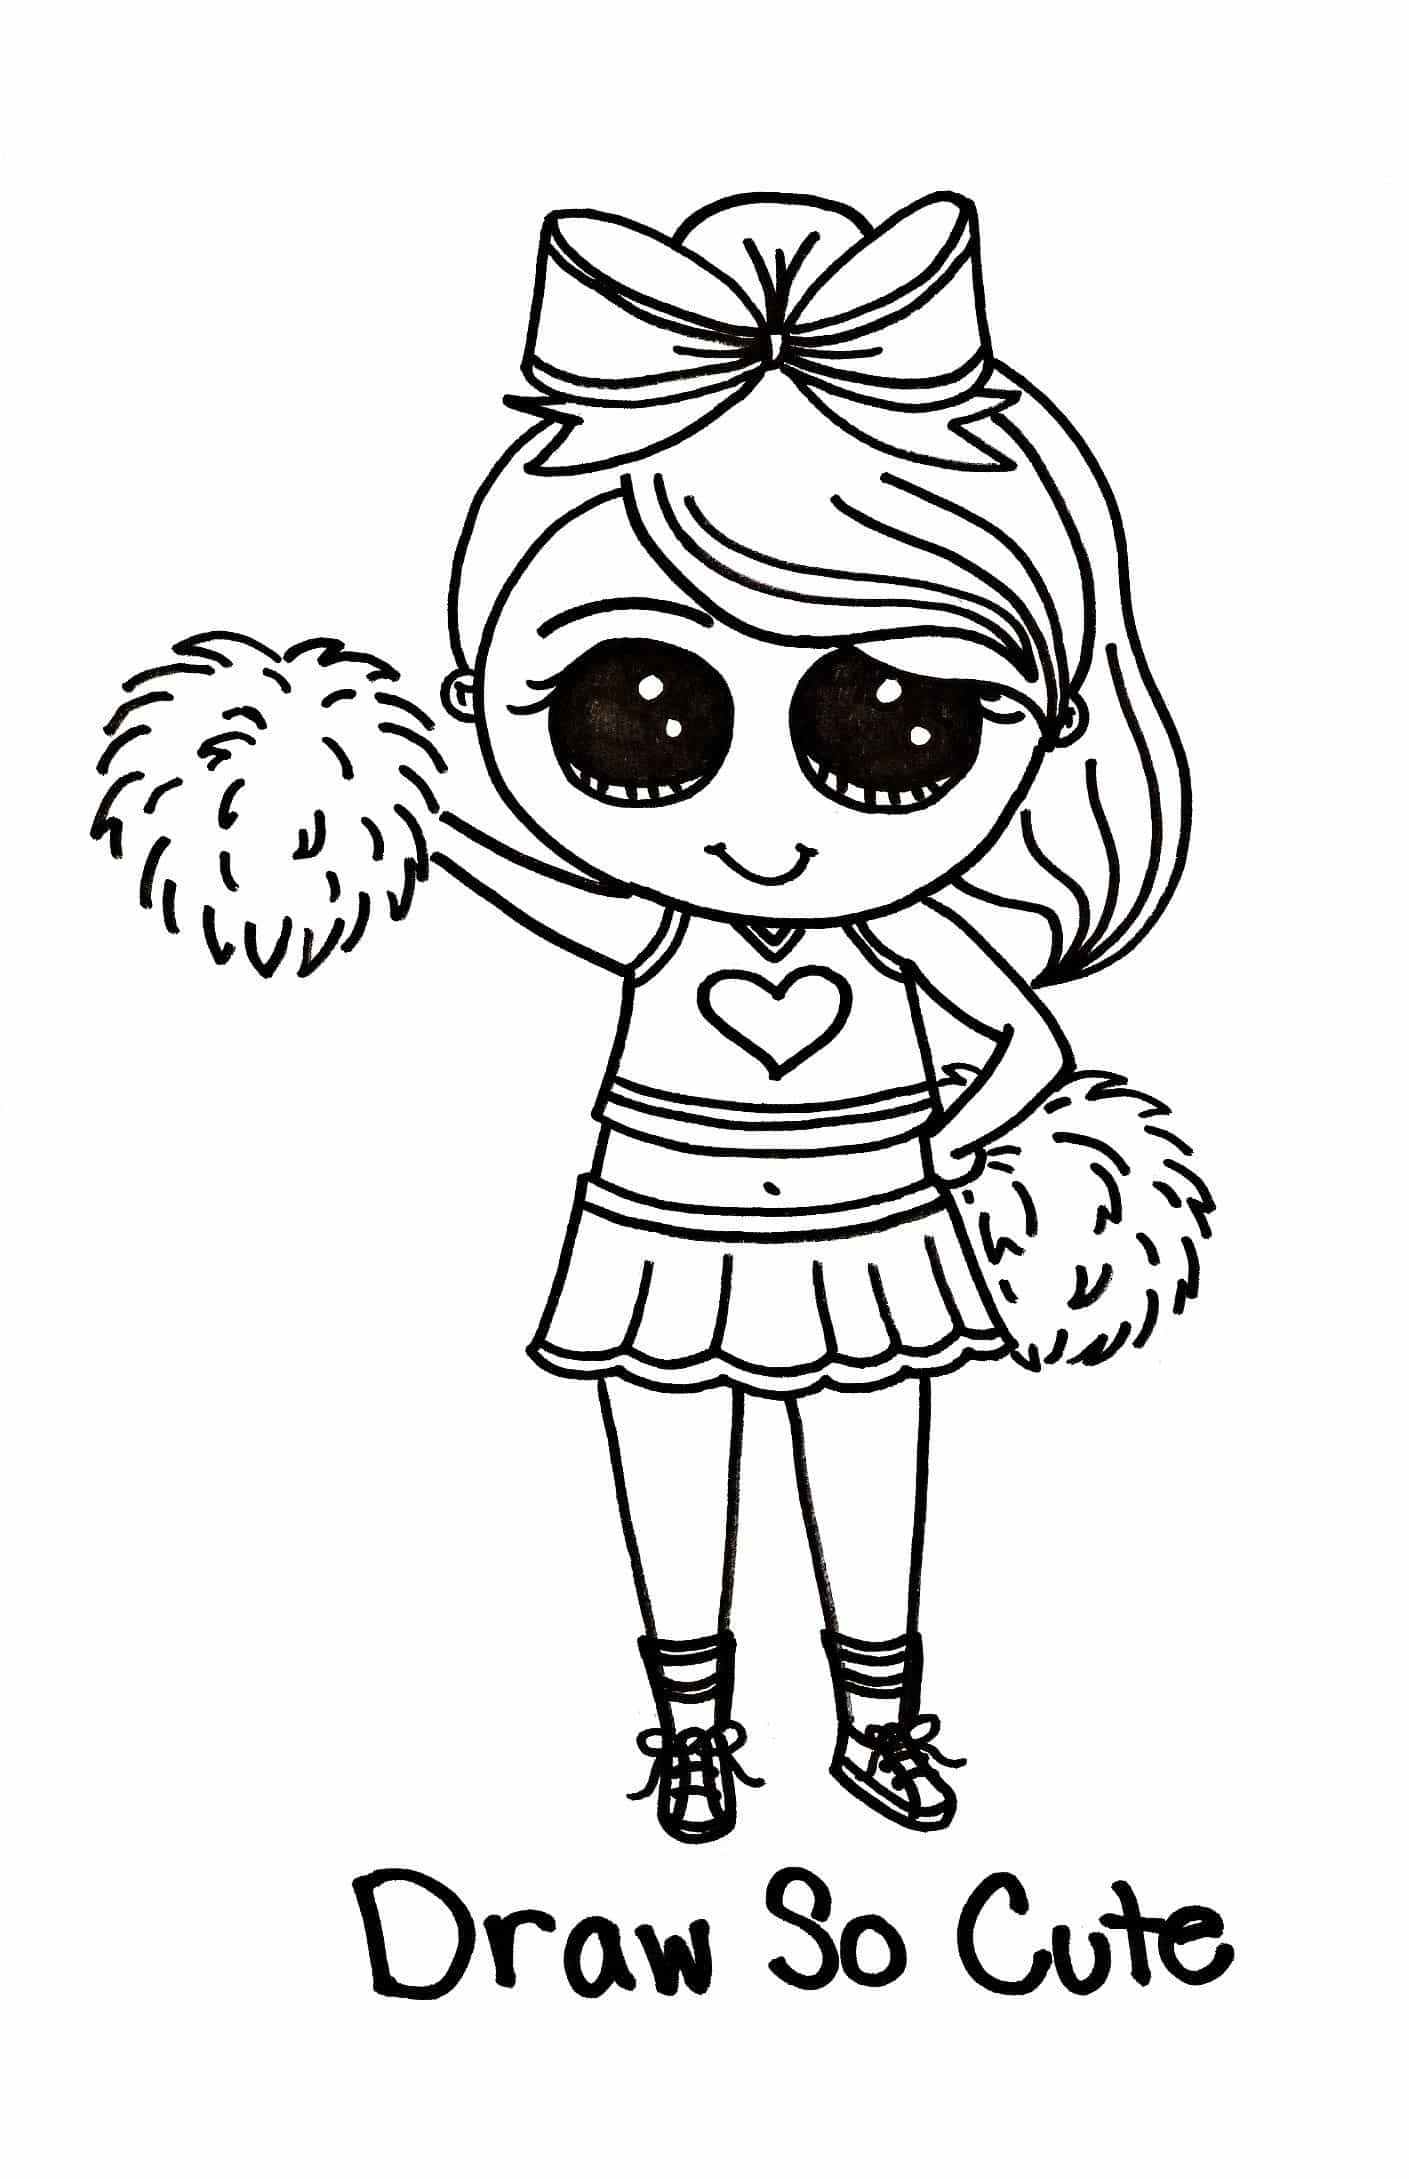 Cute Coloring Pages For Easter New Easter Draw So Cute Coloring Pages Printable Fresh Draw So Cute Cheerleader Tipsy Scribbles A Picture Says A Quotes That Connect